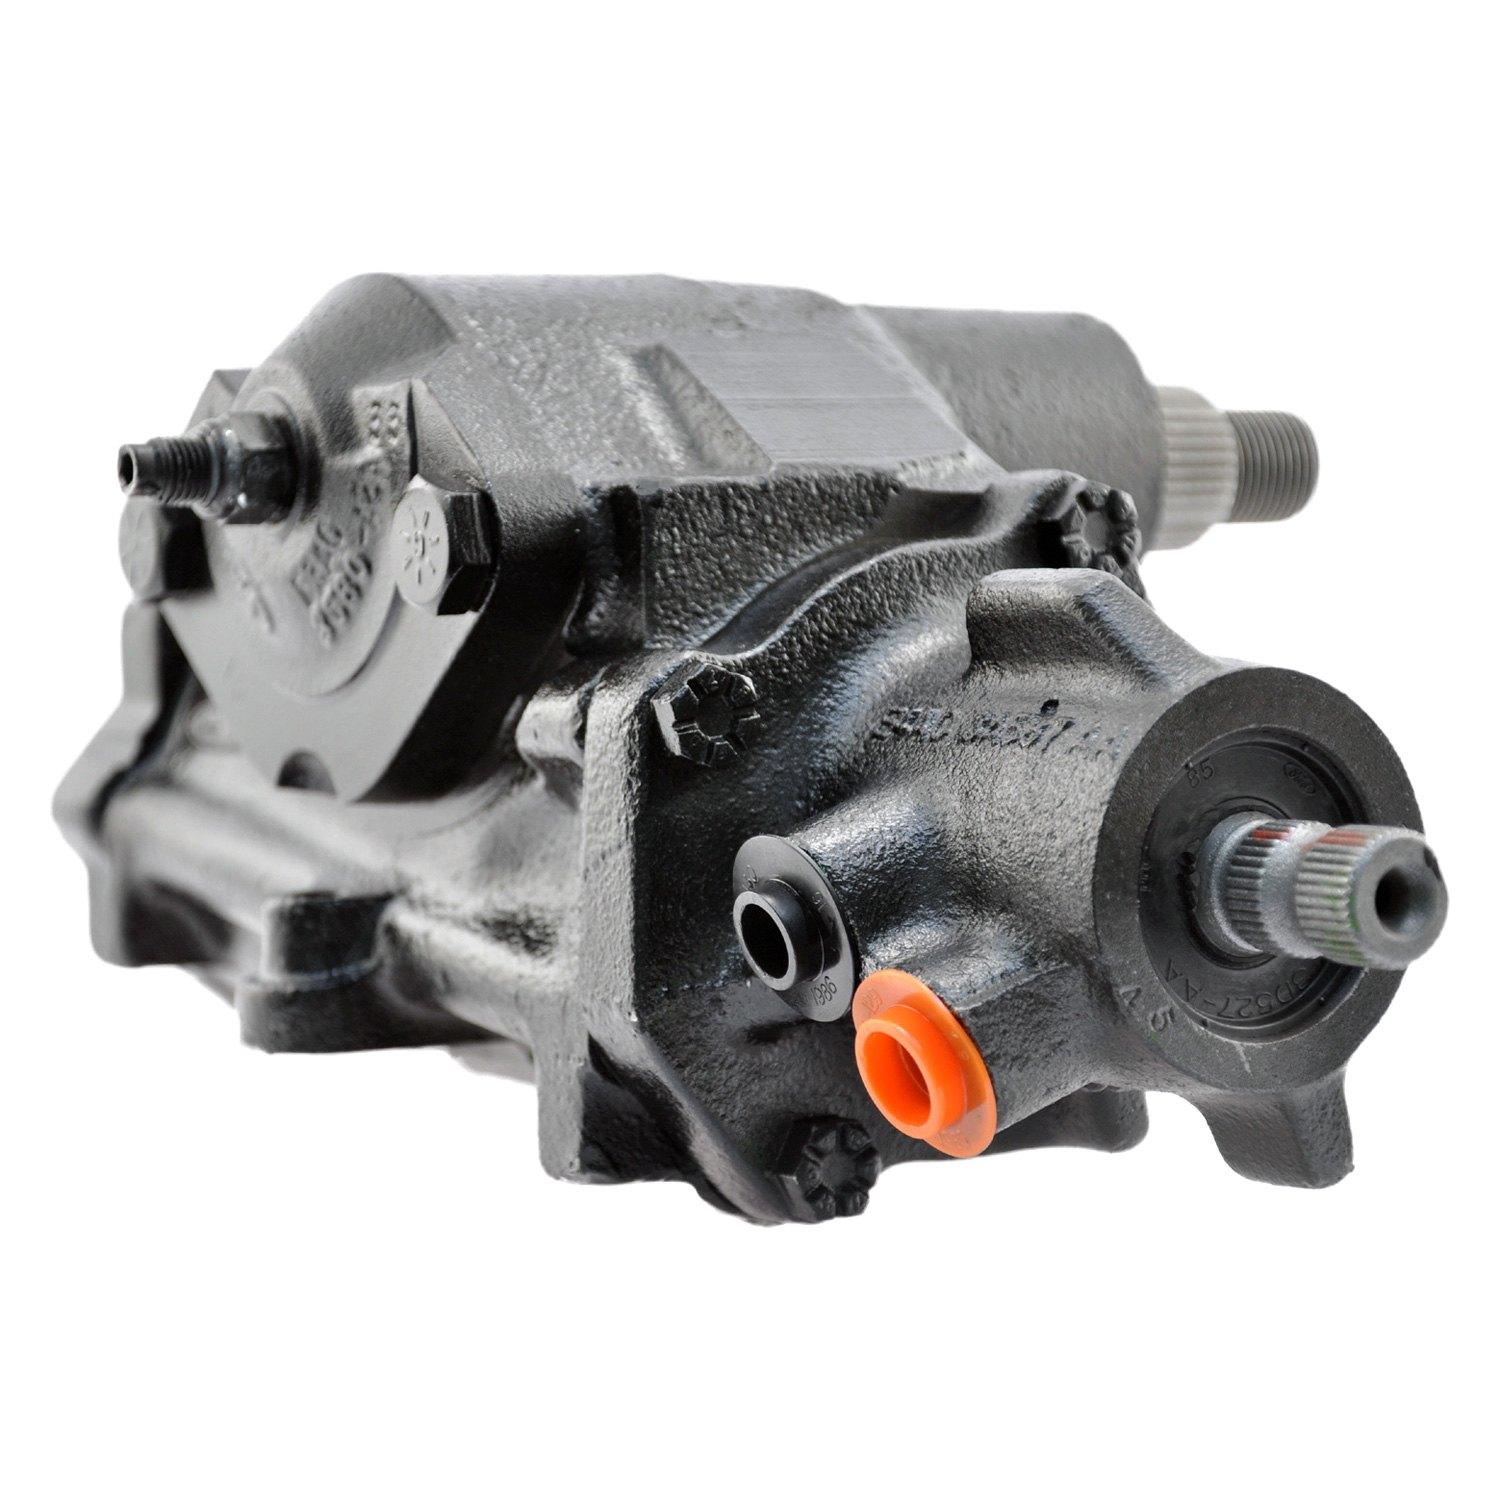 Acdelco 174 Ford F 350 1997 Professional Remanufactured